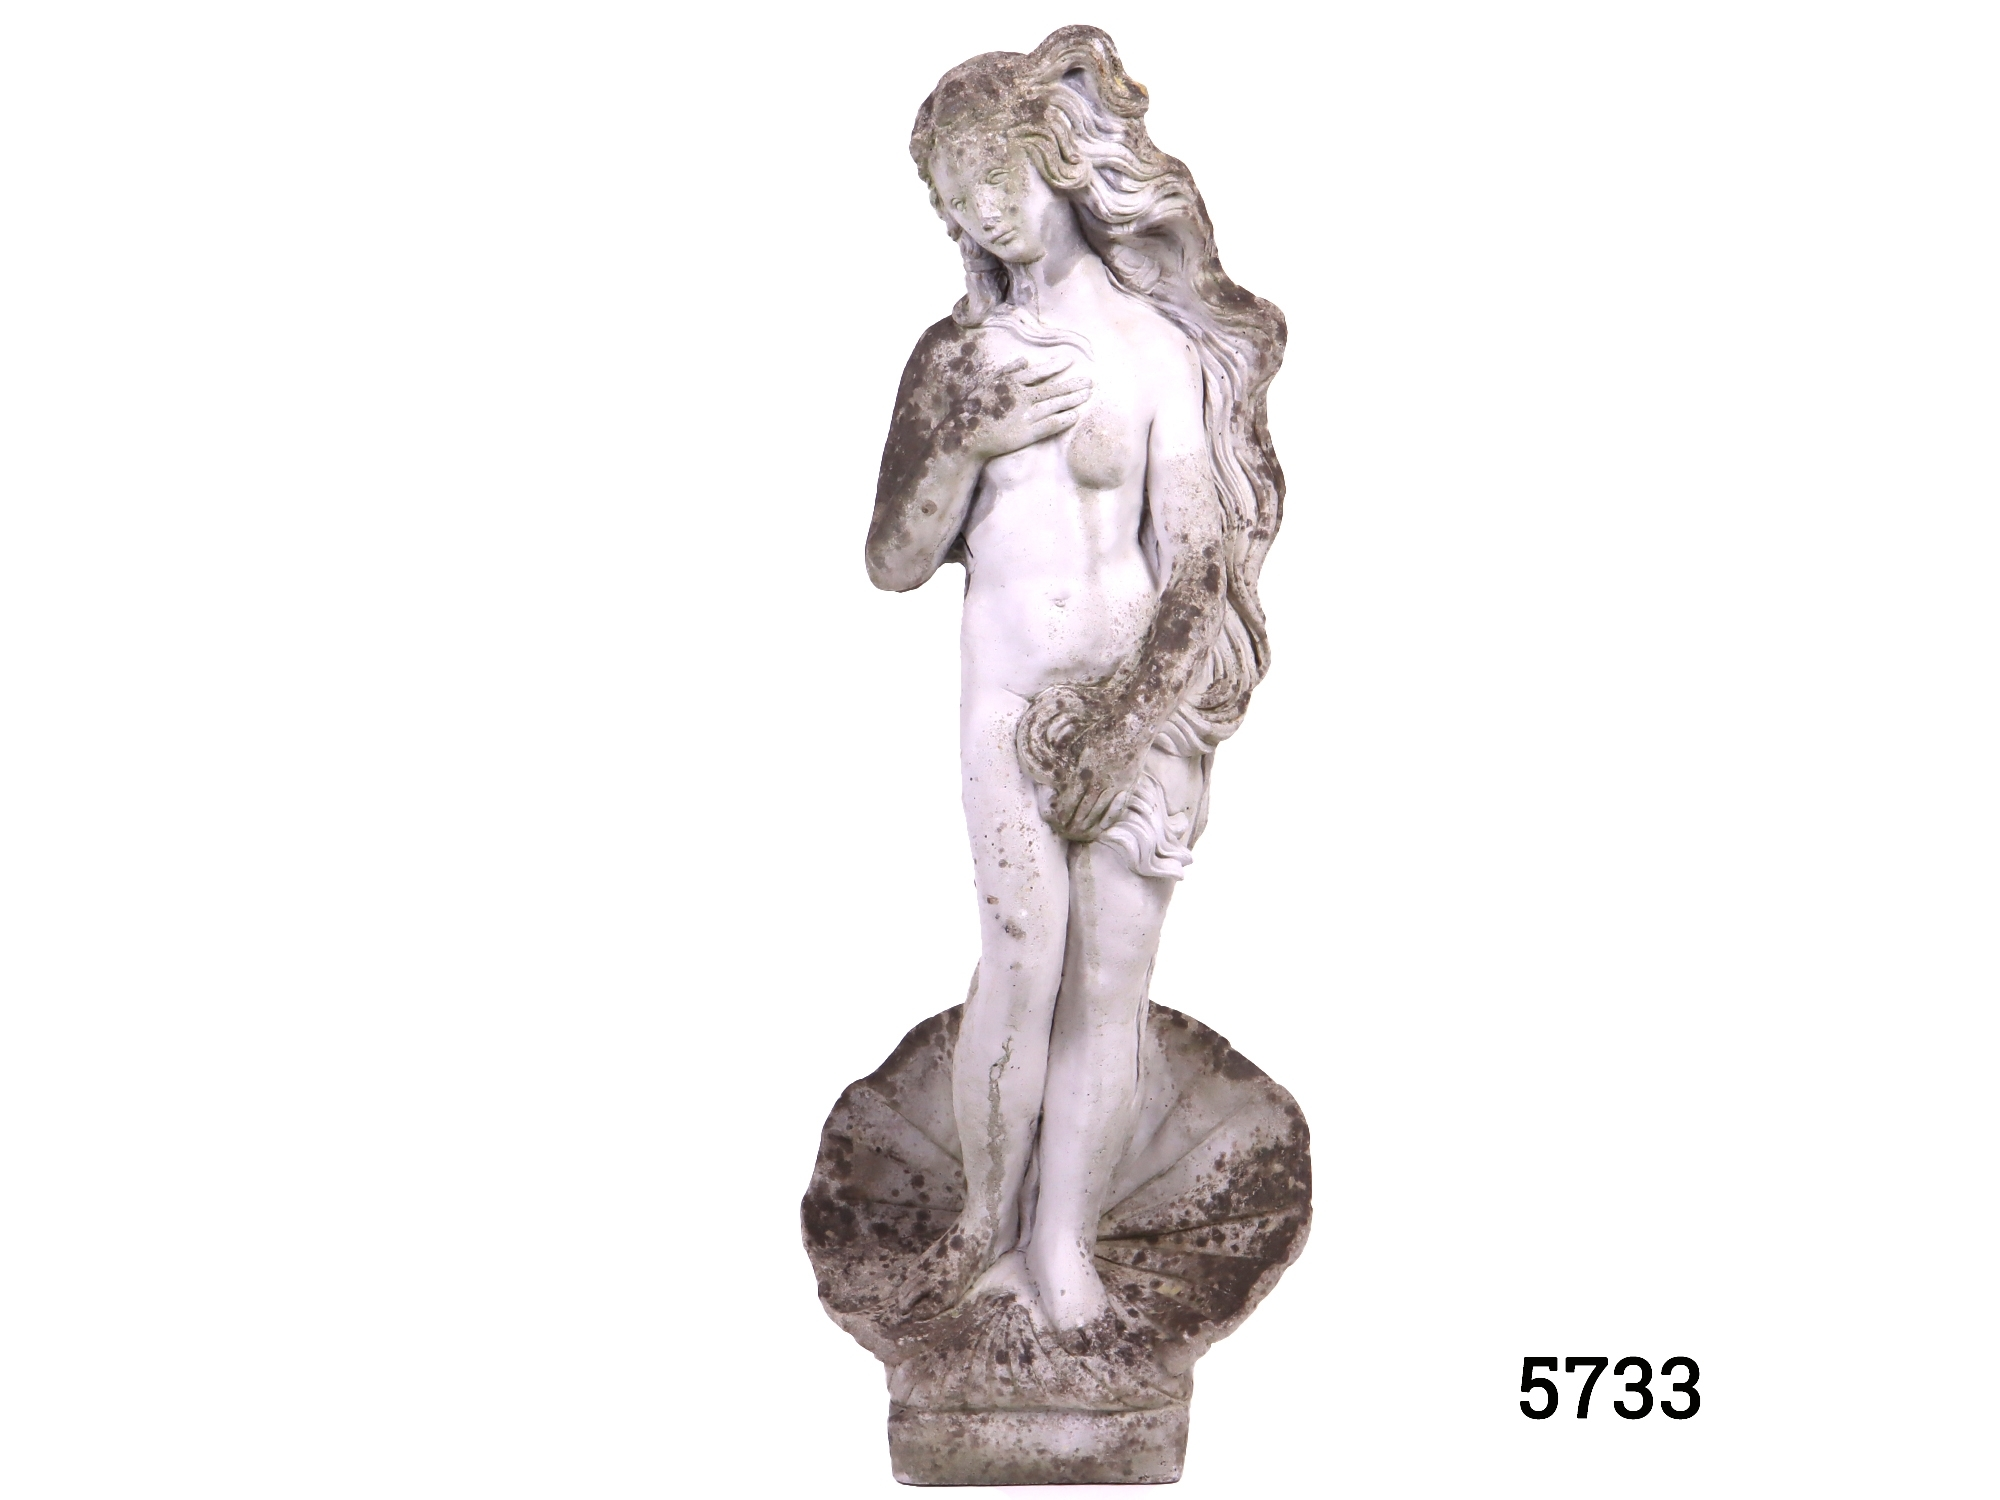 Well weathered concrete garden statue fashioned in the form of Sandro Botticellis Birth Of Venus. Square base measures 175mm by 165mm Main photo showing the whole statue from the front